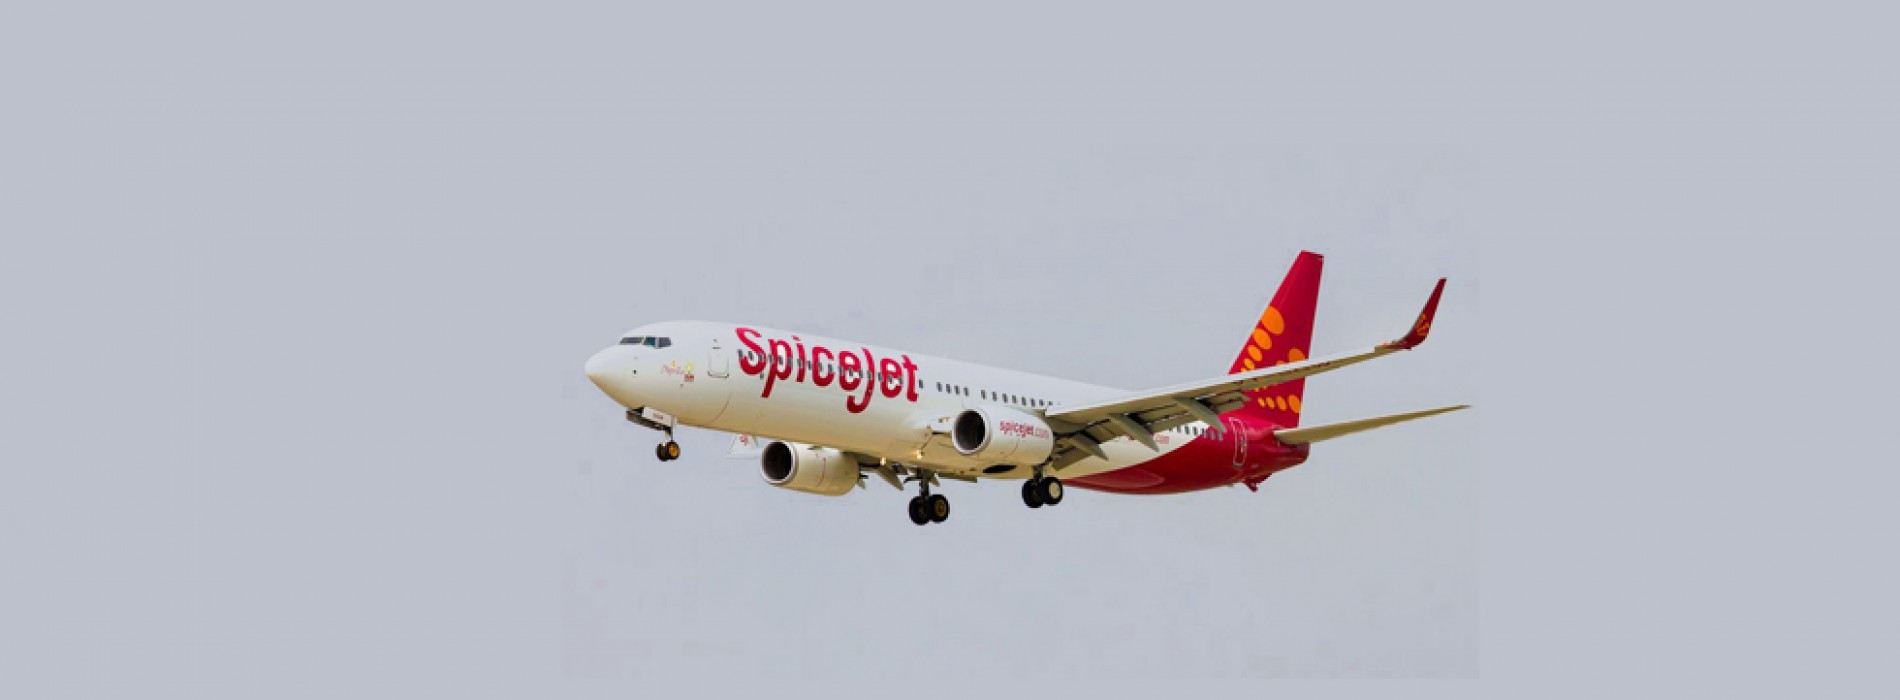 Puducherry back on aviation map as Spice Jet launches daily Hyderabad flights